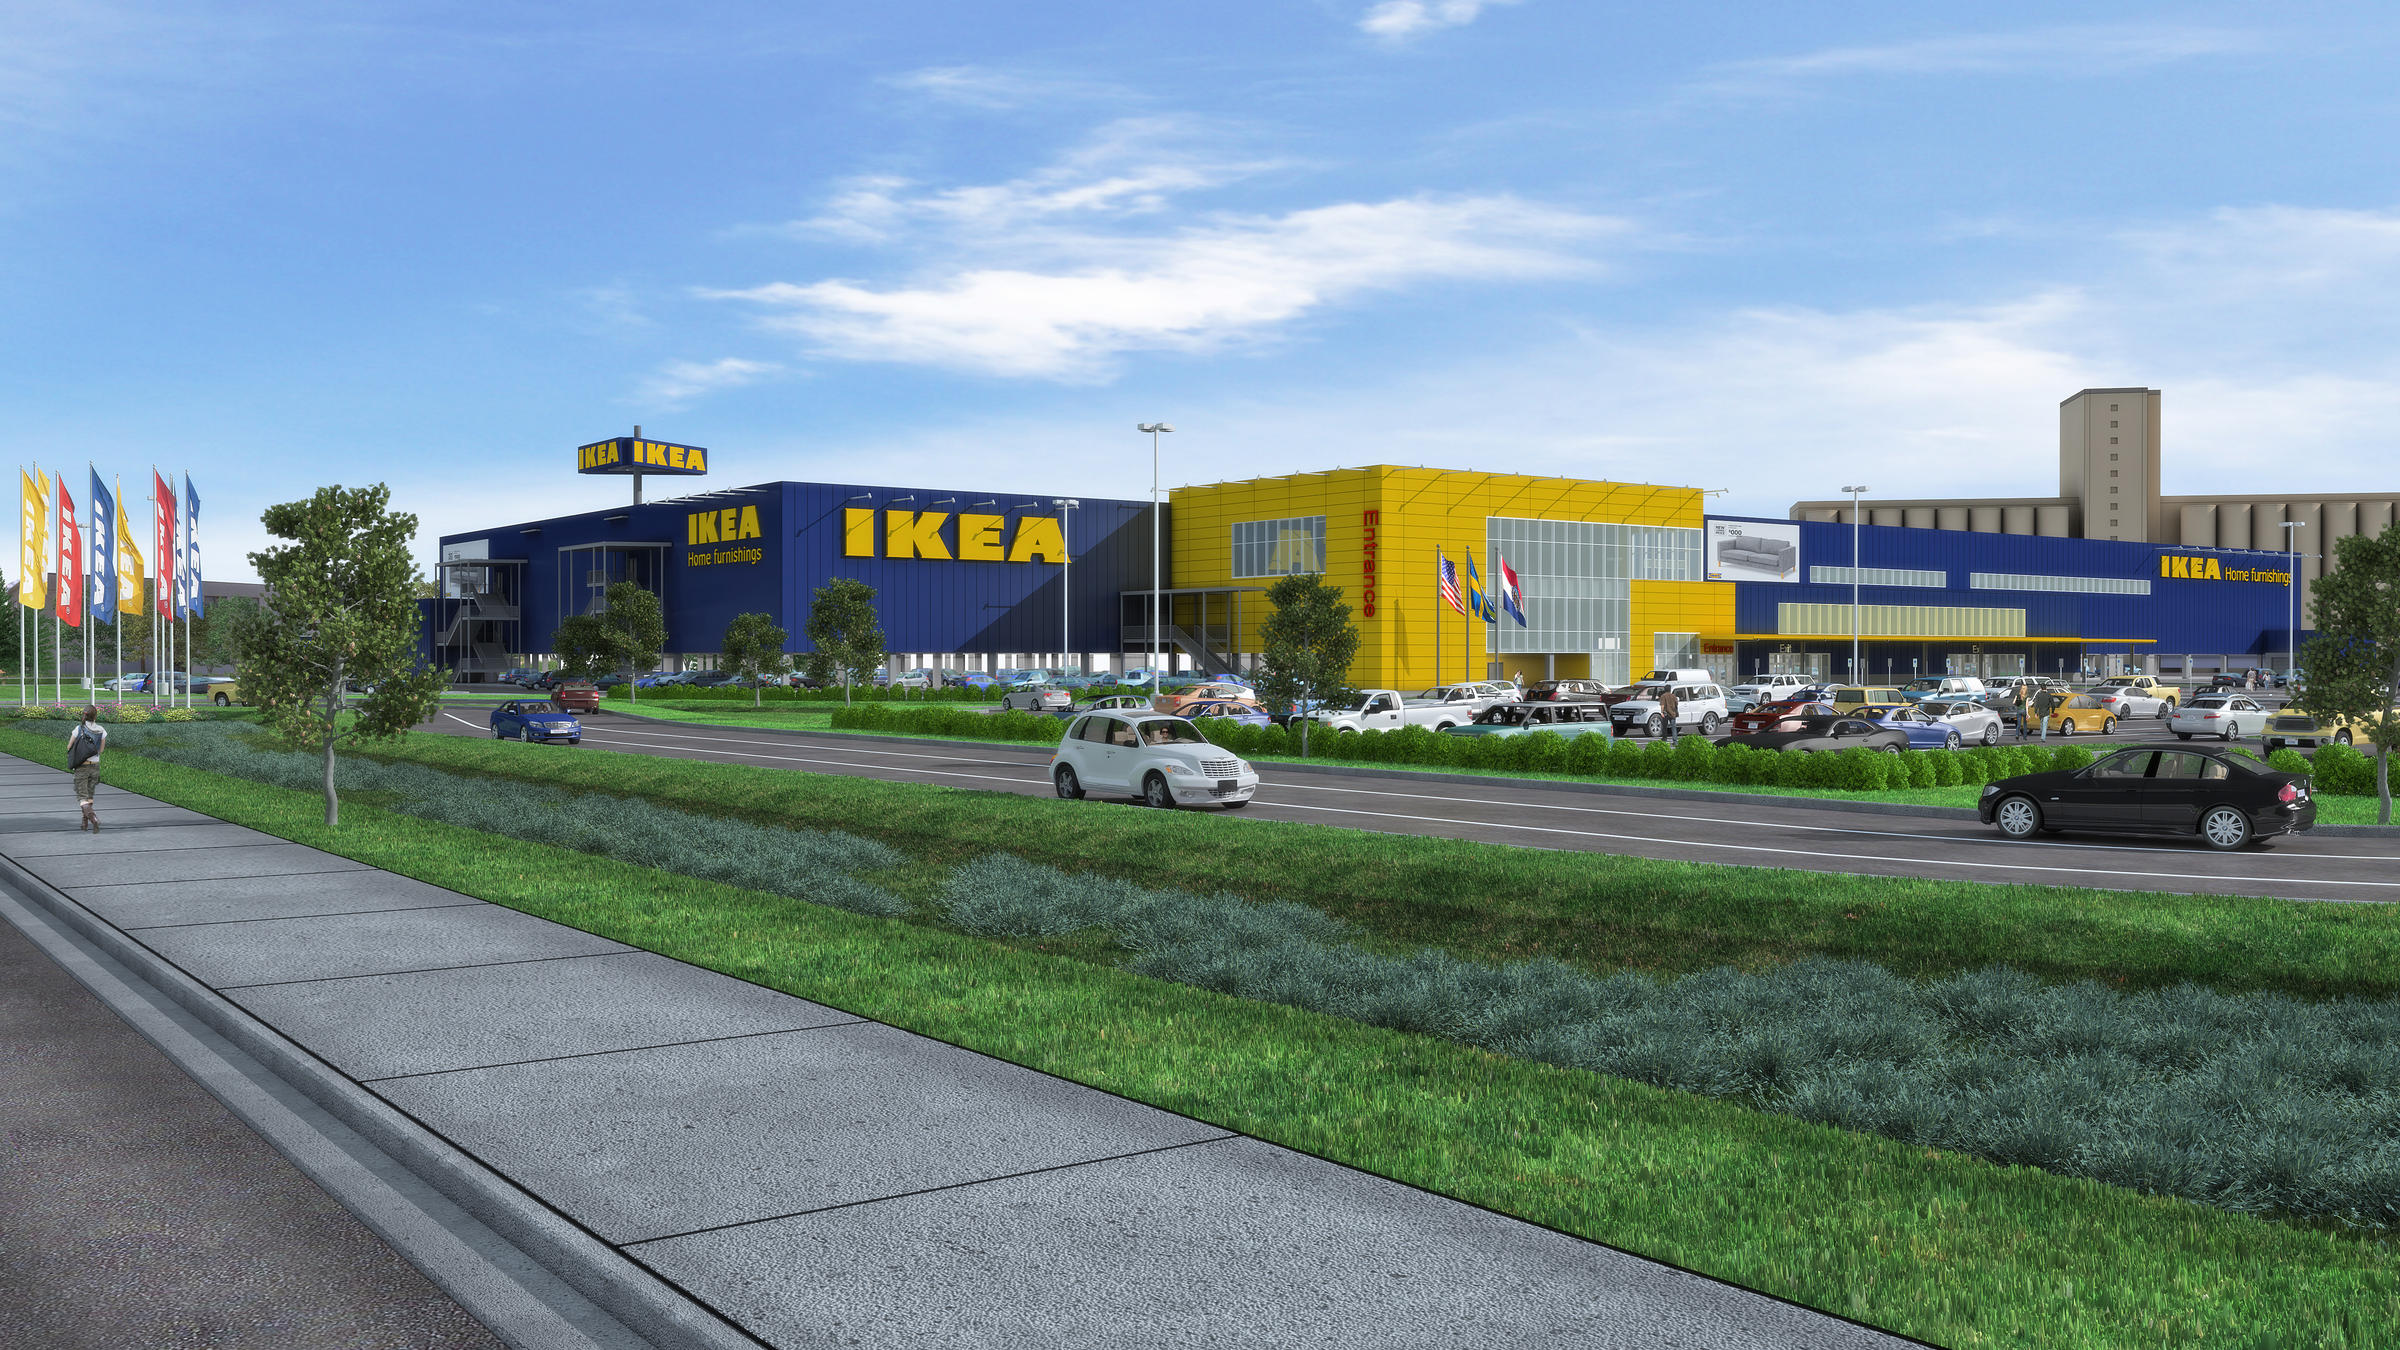 ikea 39 s st louis store taking shape st louis public radio. Black Bedroom Furniture Sets. Home Design Ideas